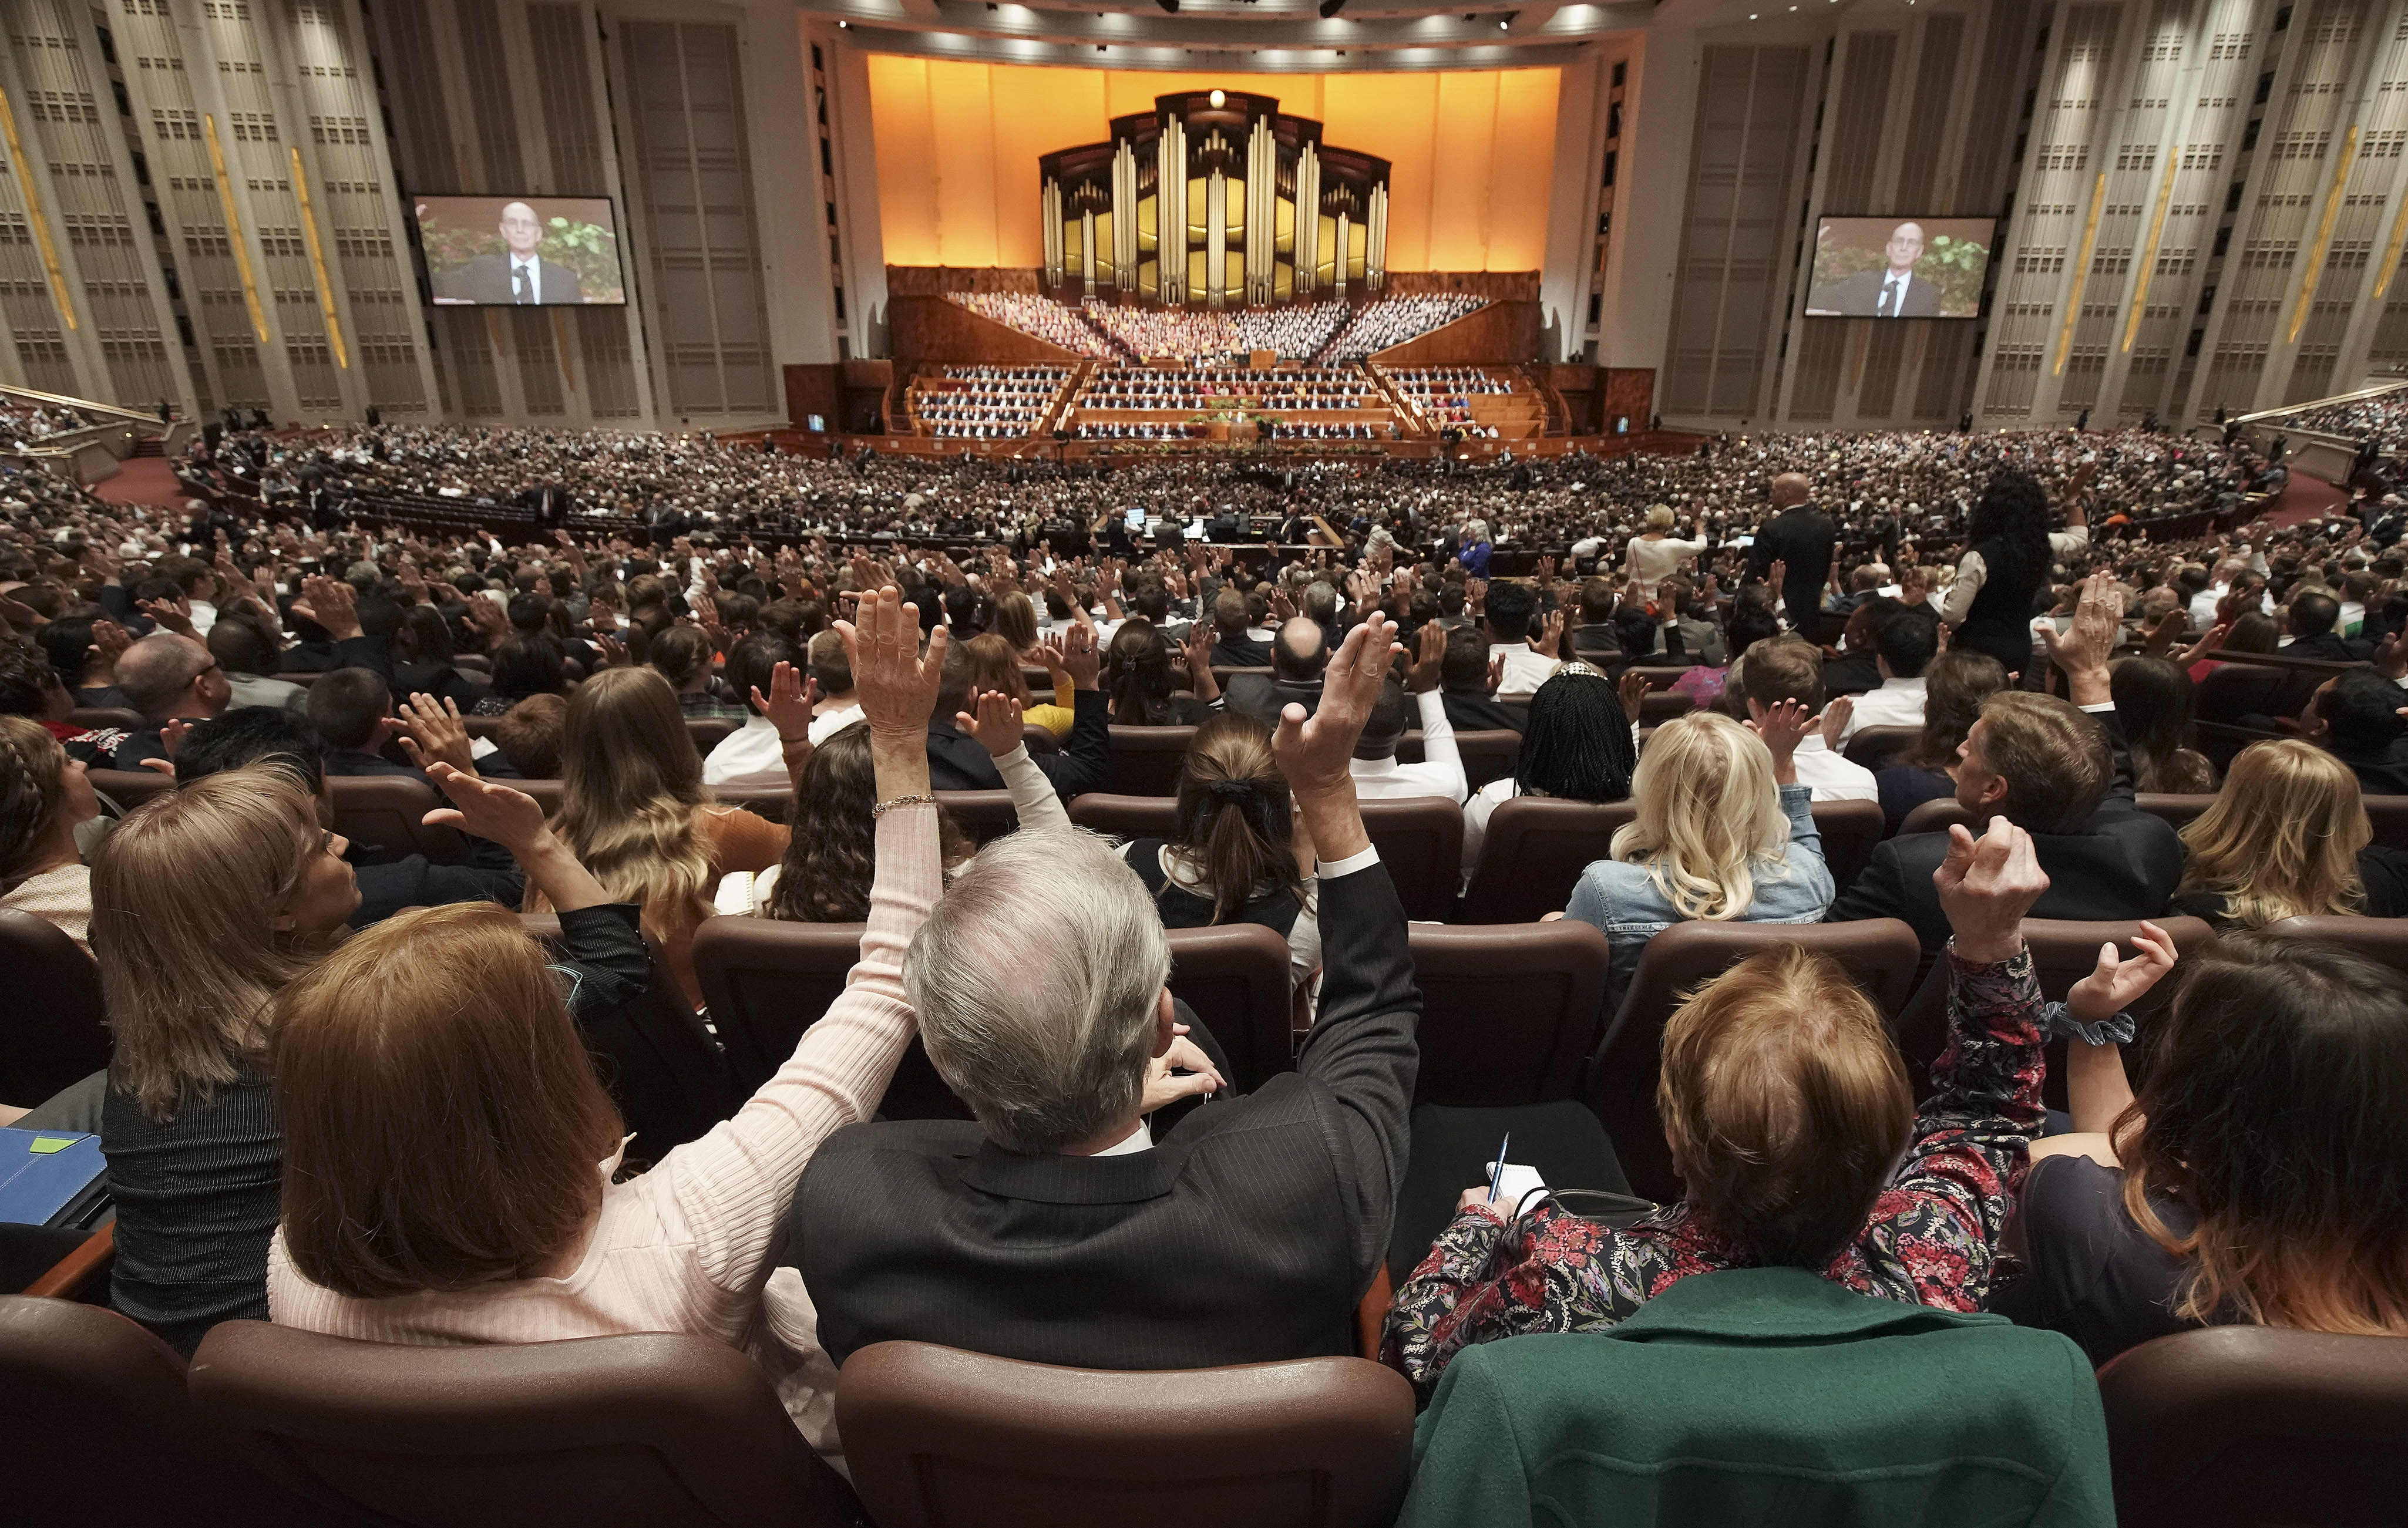 Conferencegoers sustain church leaders during the Saturday afternoon session of the 189th Semiannual General Conference of The Church of Jesus Christ of Latter-day Saints in the Conference Center in Salt Lake City on Saturday, Oct. 5, 2019.